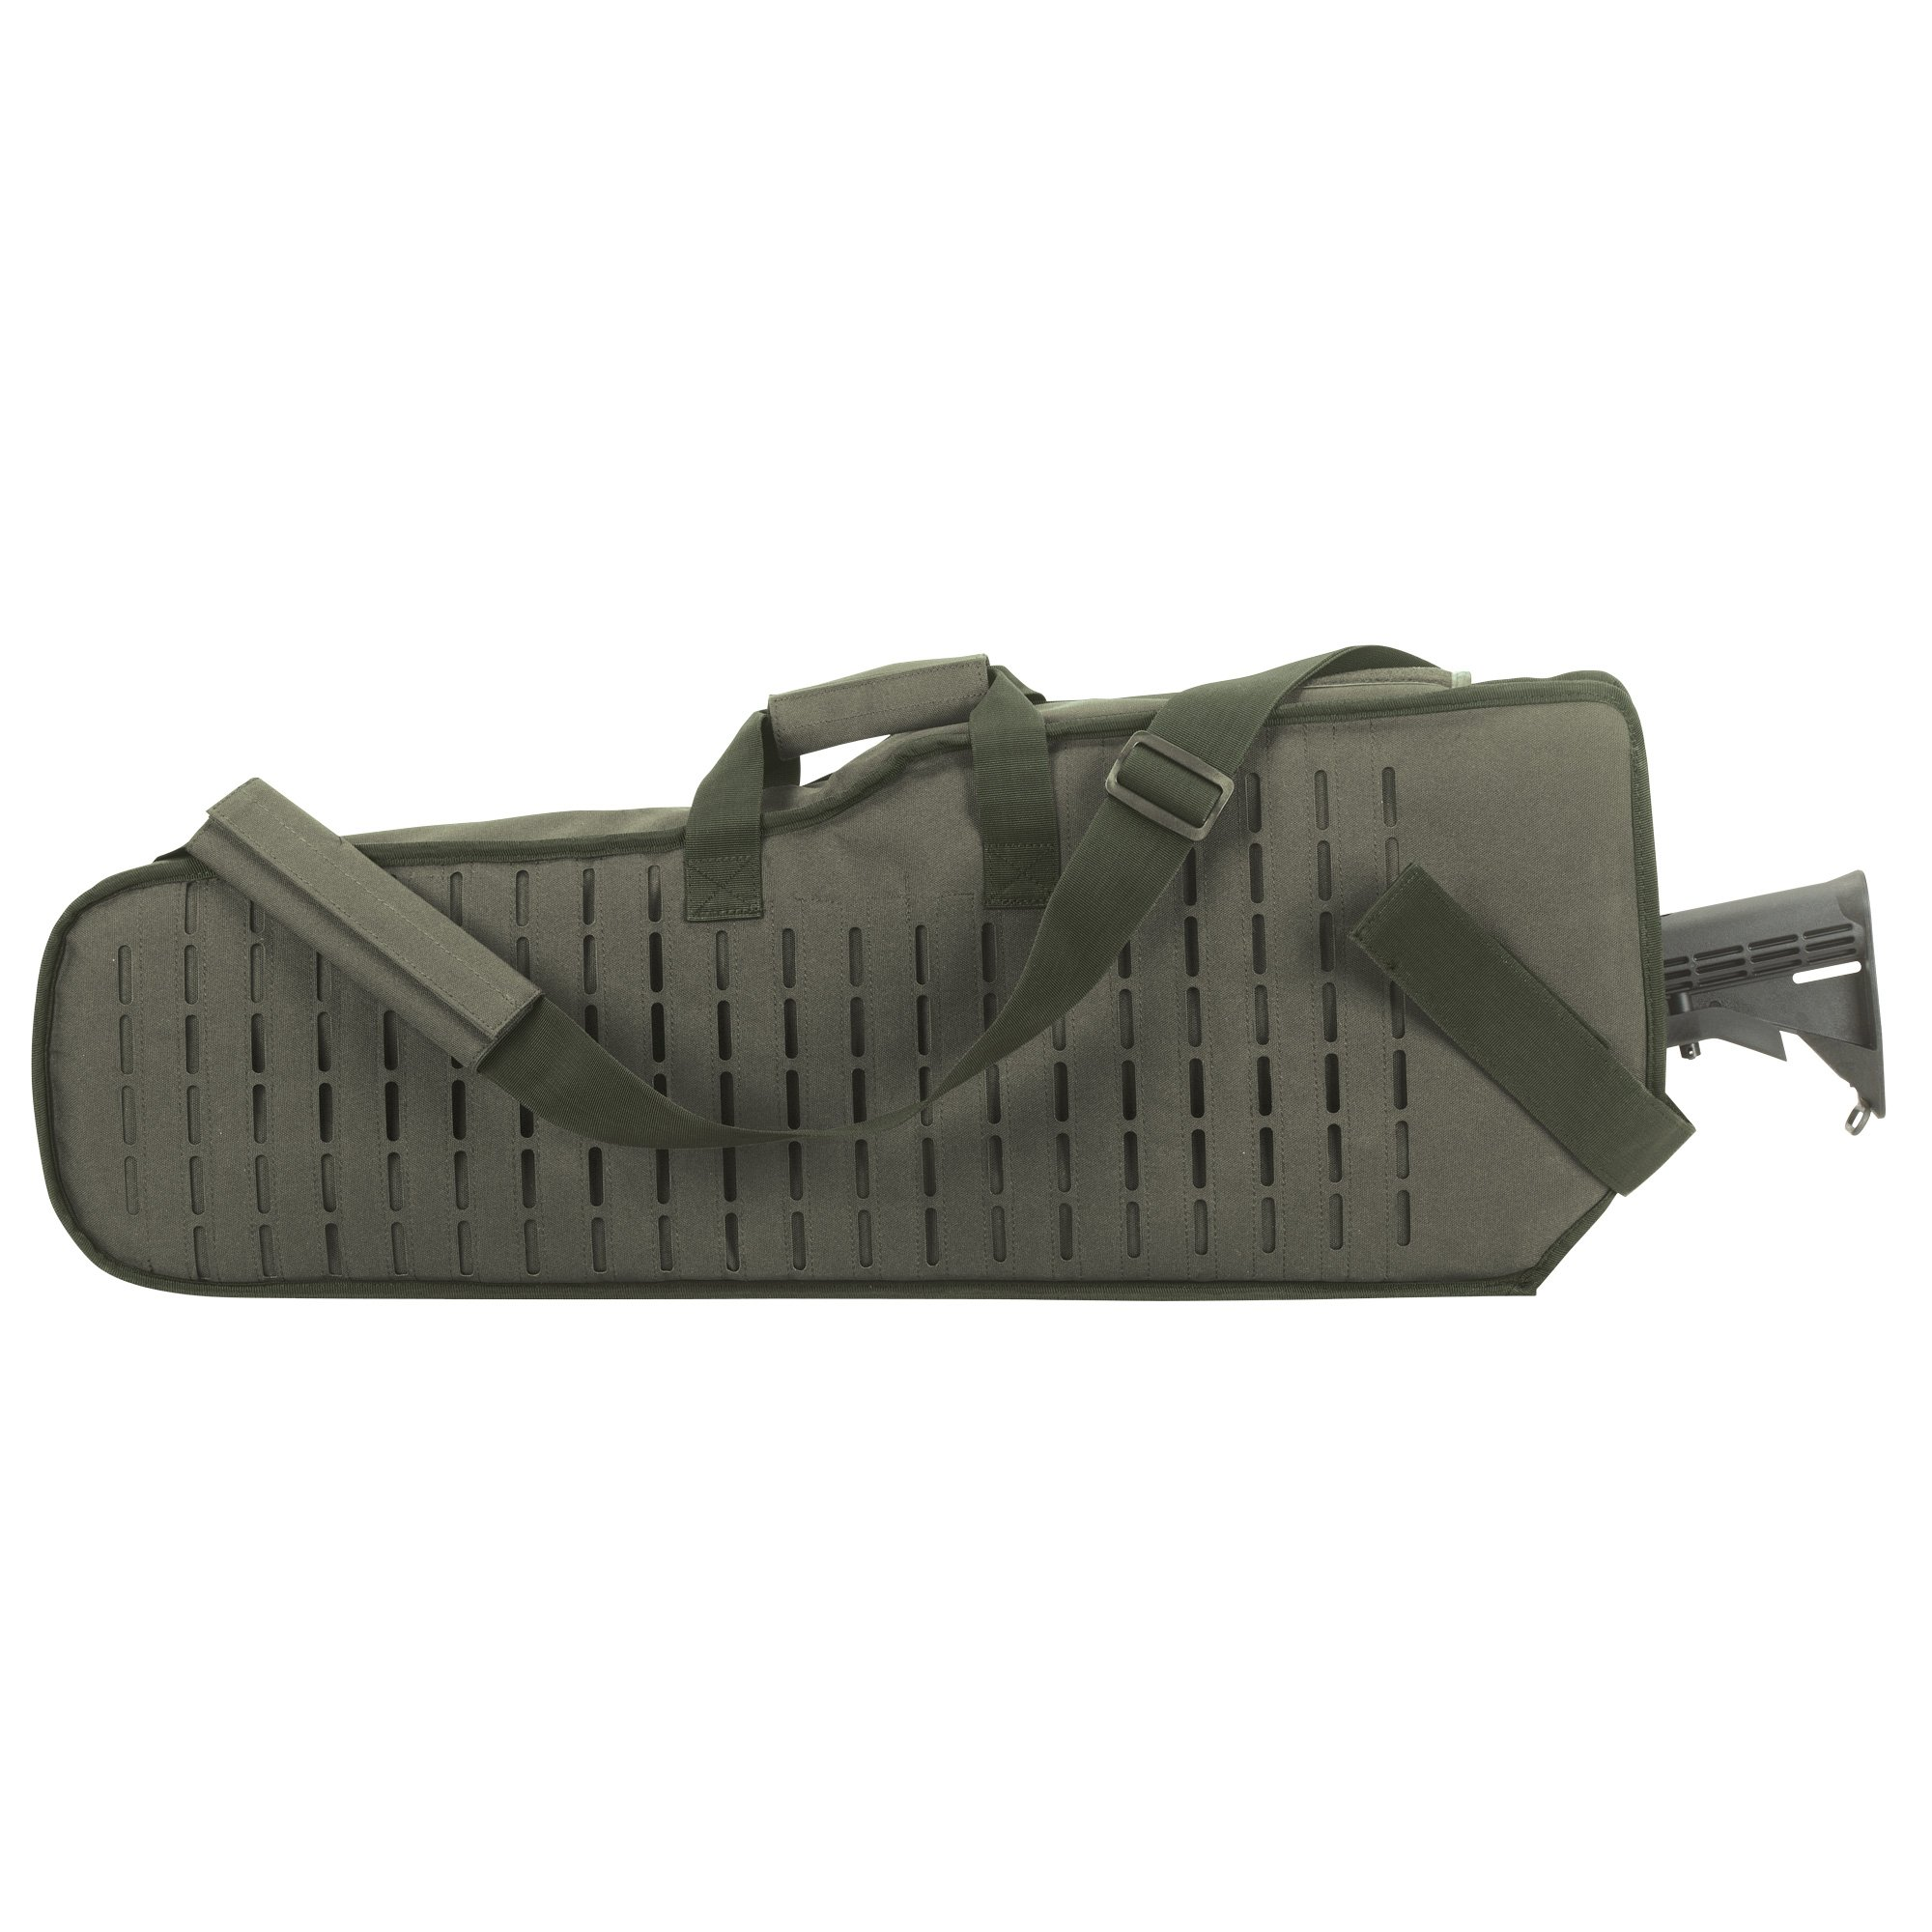 VooDoo Tactical Scope Rifle Scabbard, Olive Drab by VooDoo Tactical